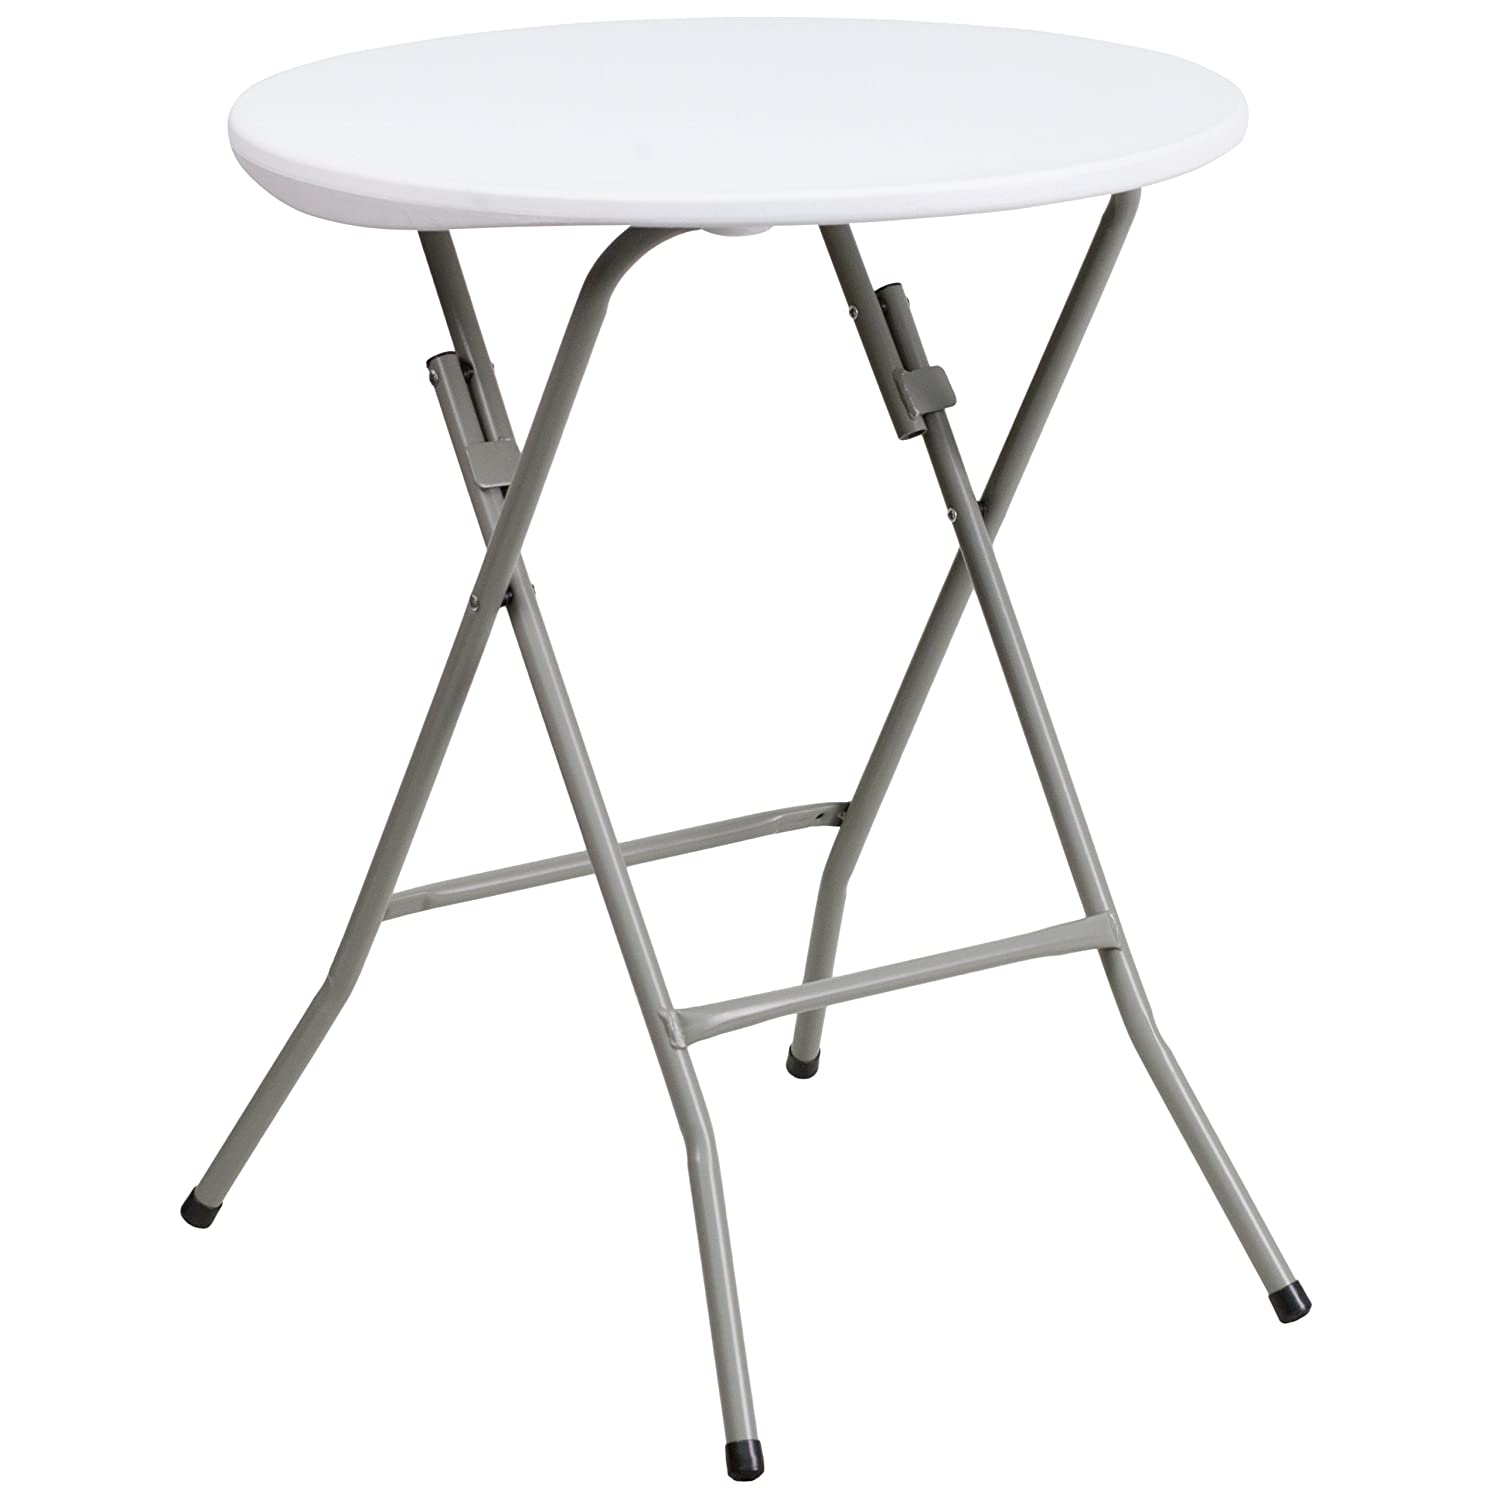 Flash Furniture 24'' Round Granite White Plastic Folding Table Flash Furniture - DROPSHIP DAD-YCZ-80R-1-SM-GW-GG